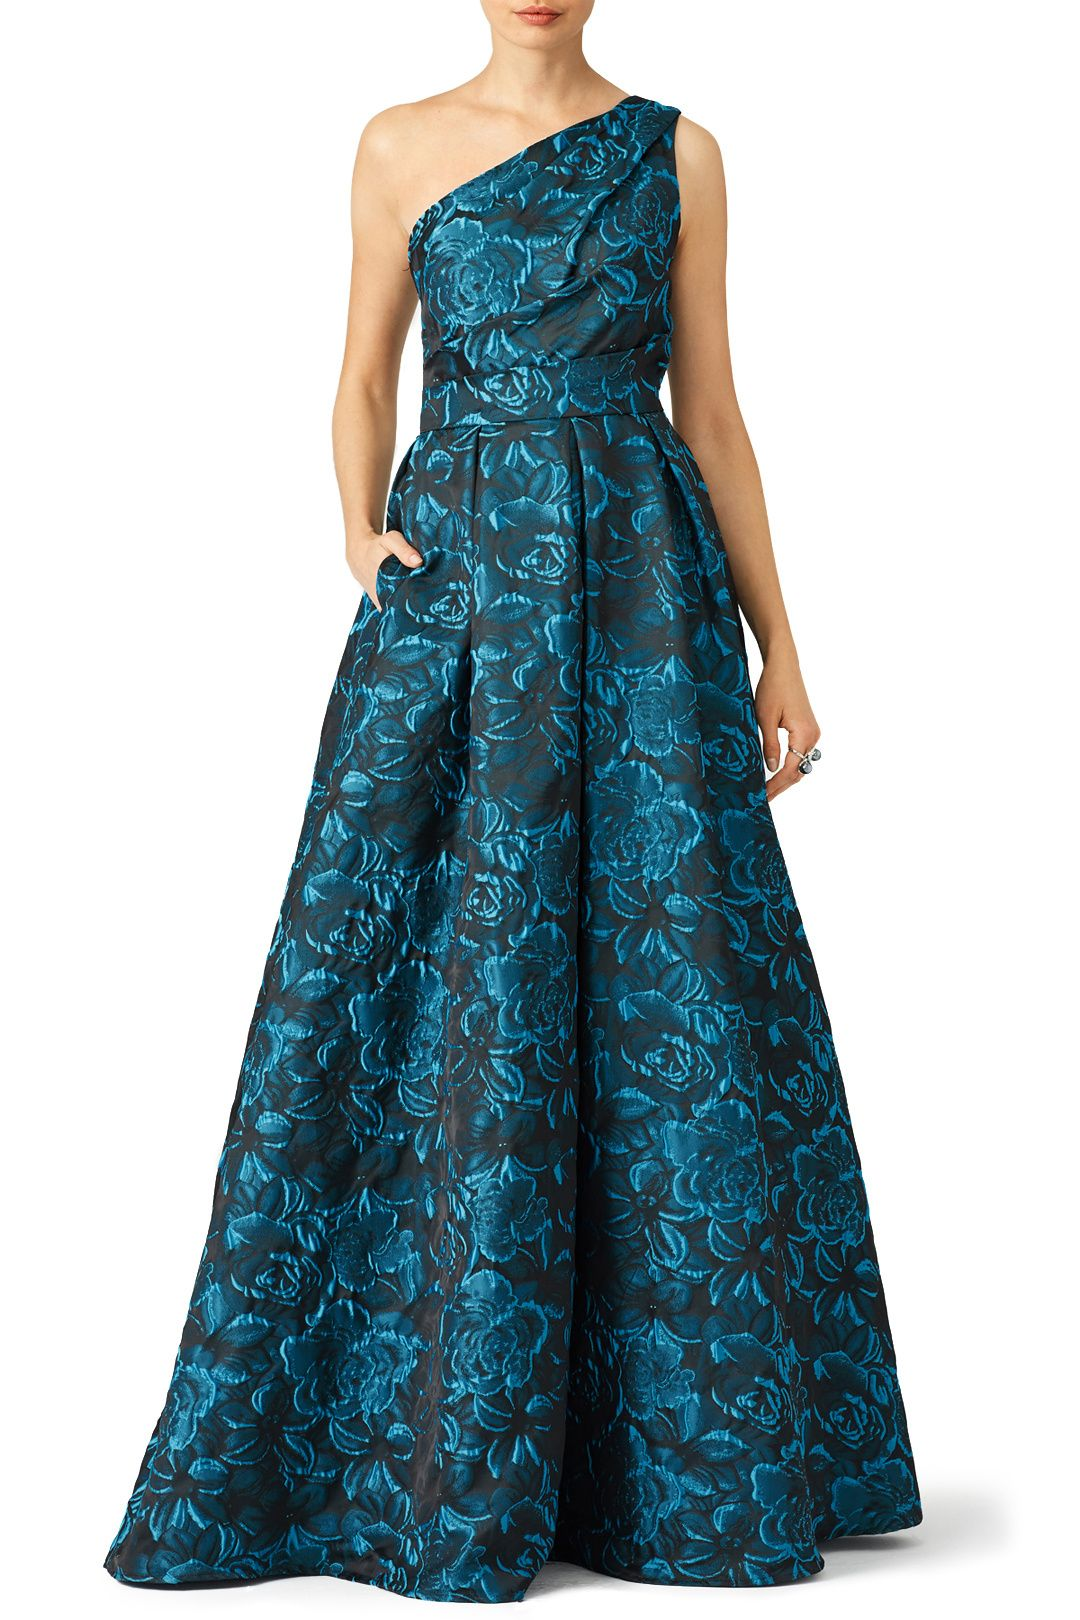 Rent Blue Simonetta Gown by Slate & Willow for $50 - $85 only at ...